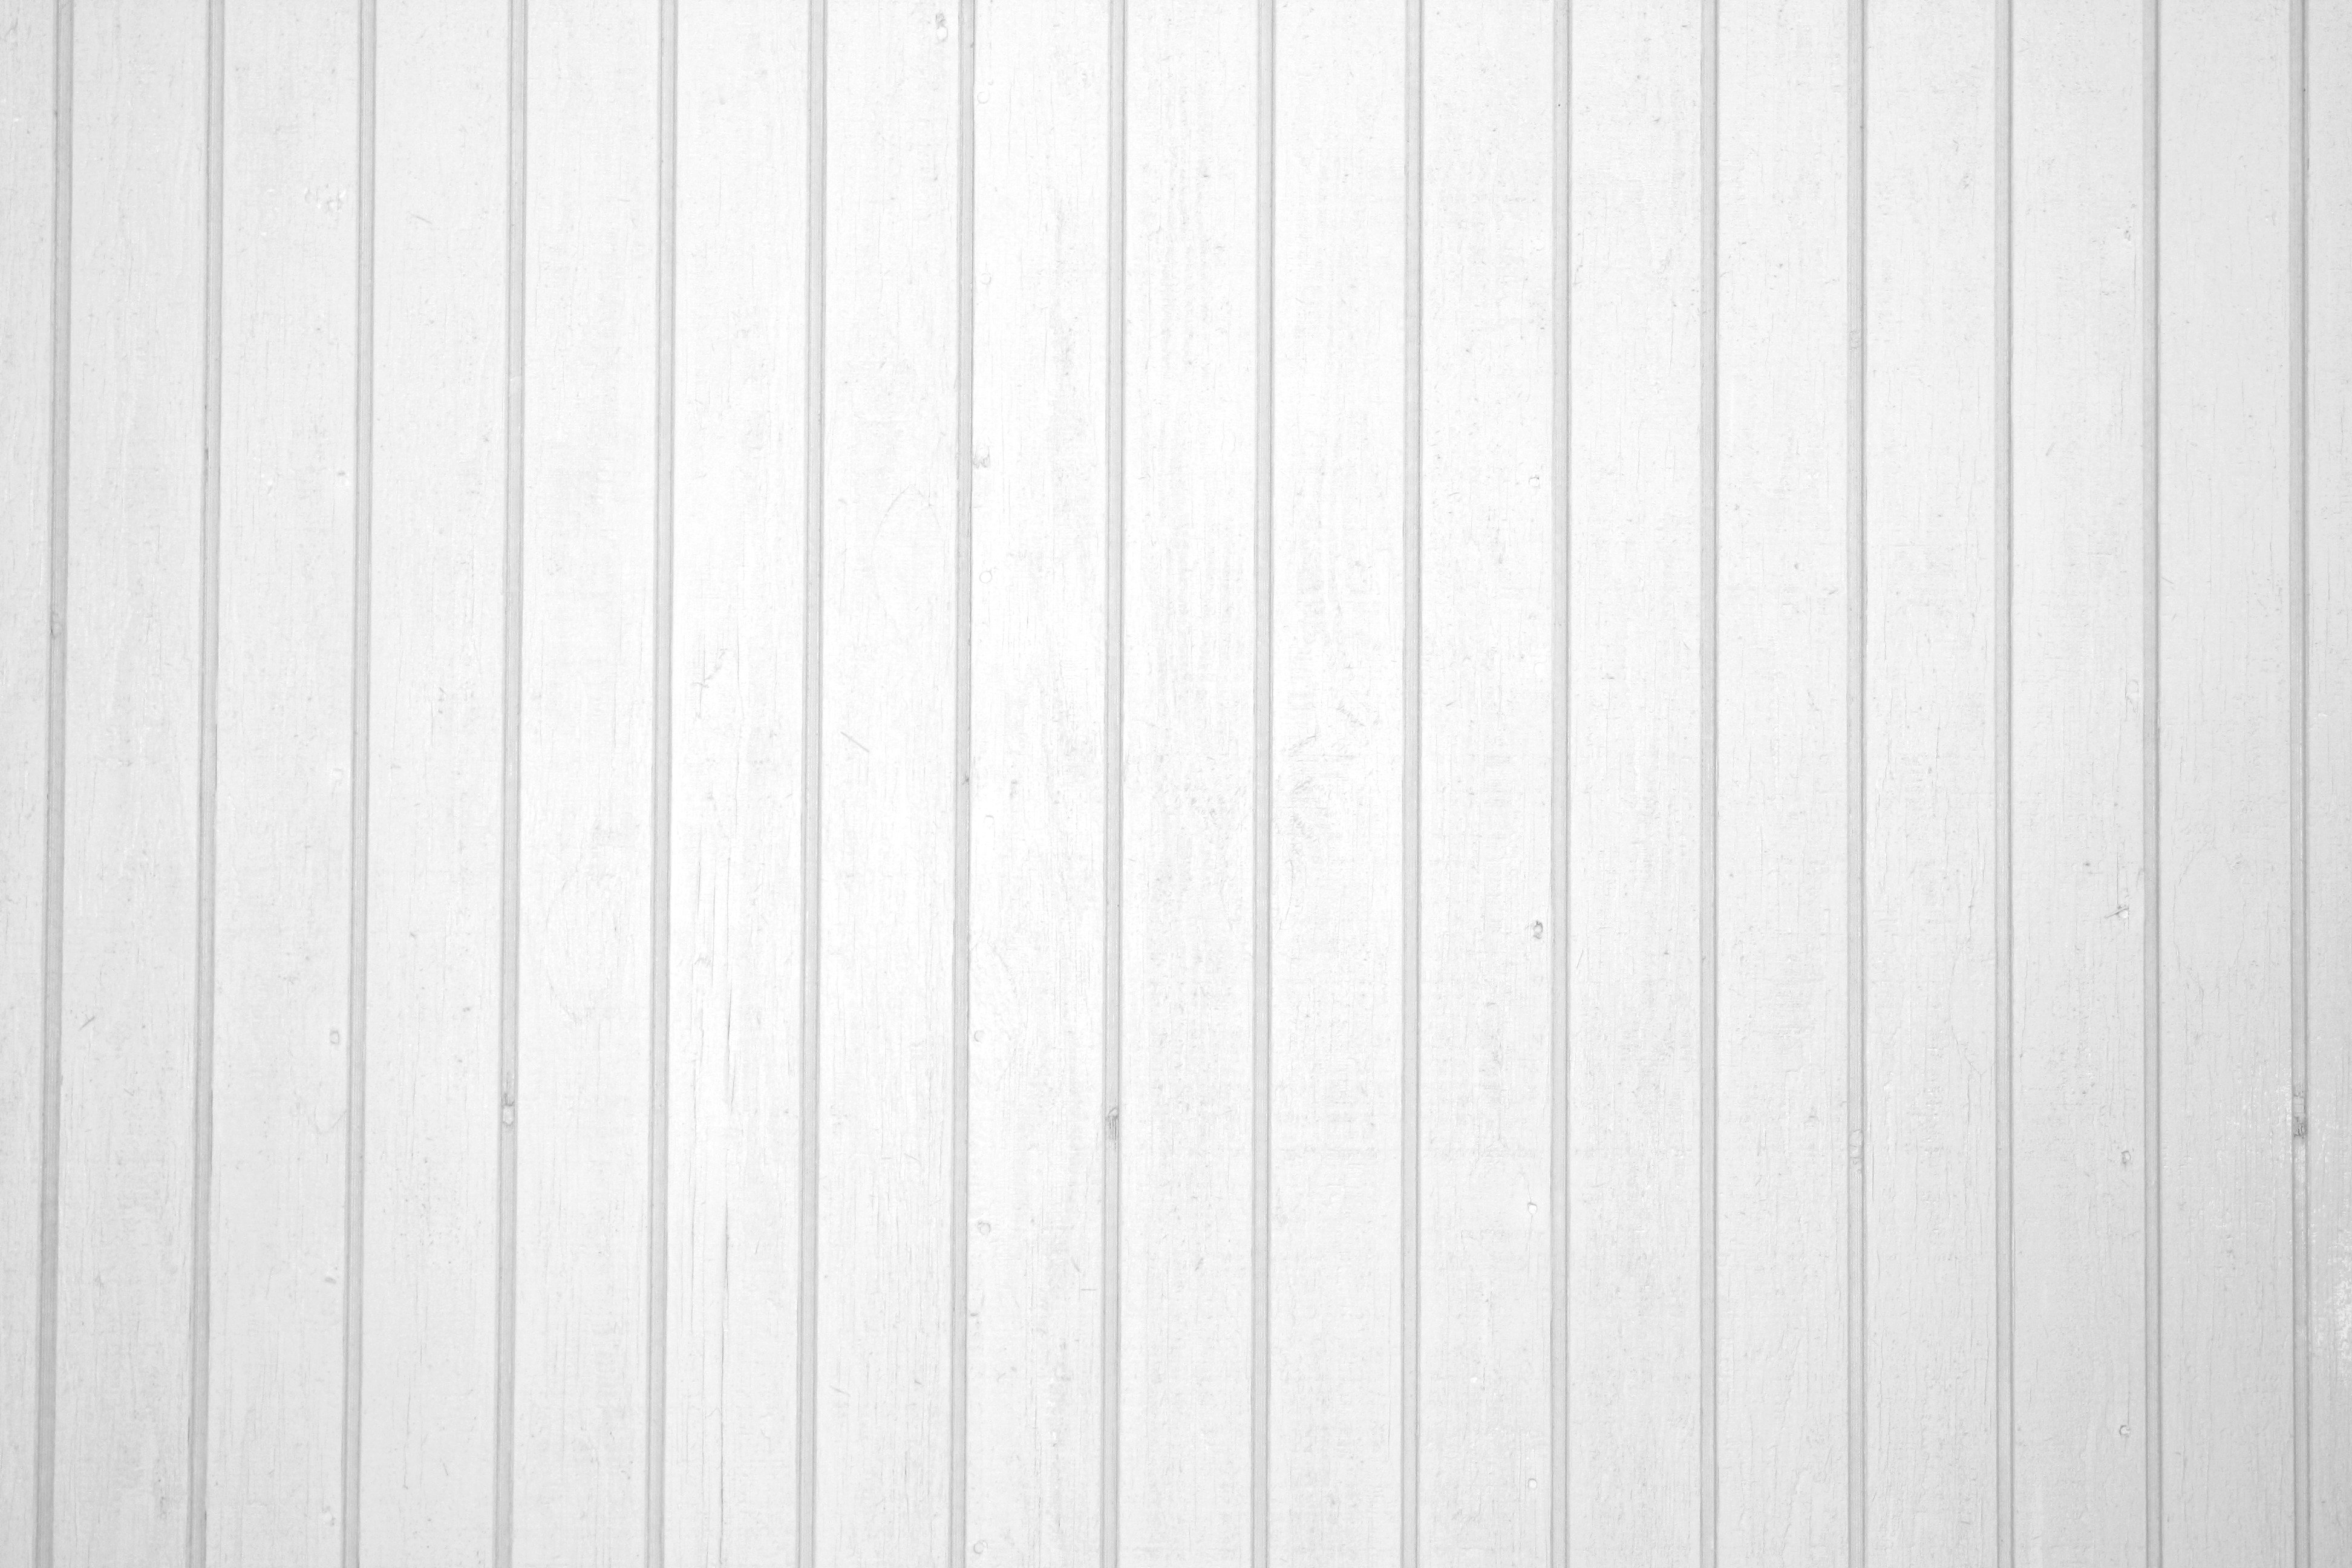 White Vertical Siding or Wall Paneling Texture Picture